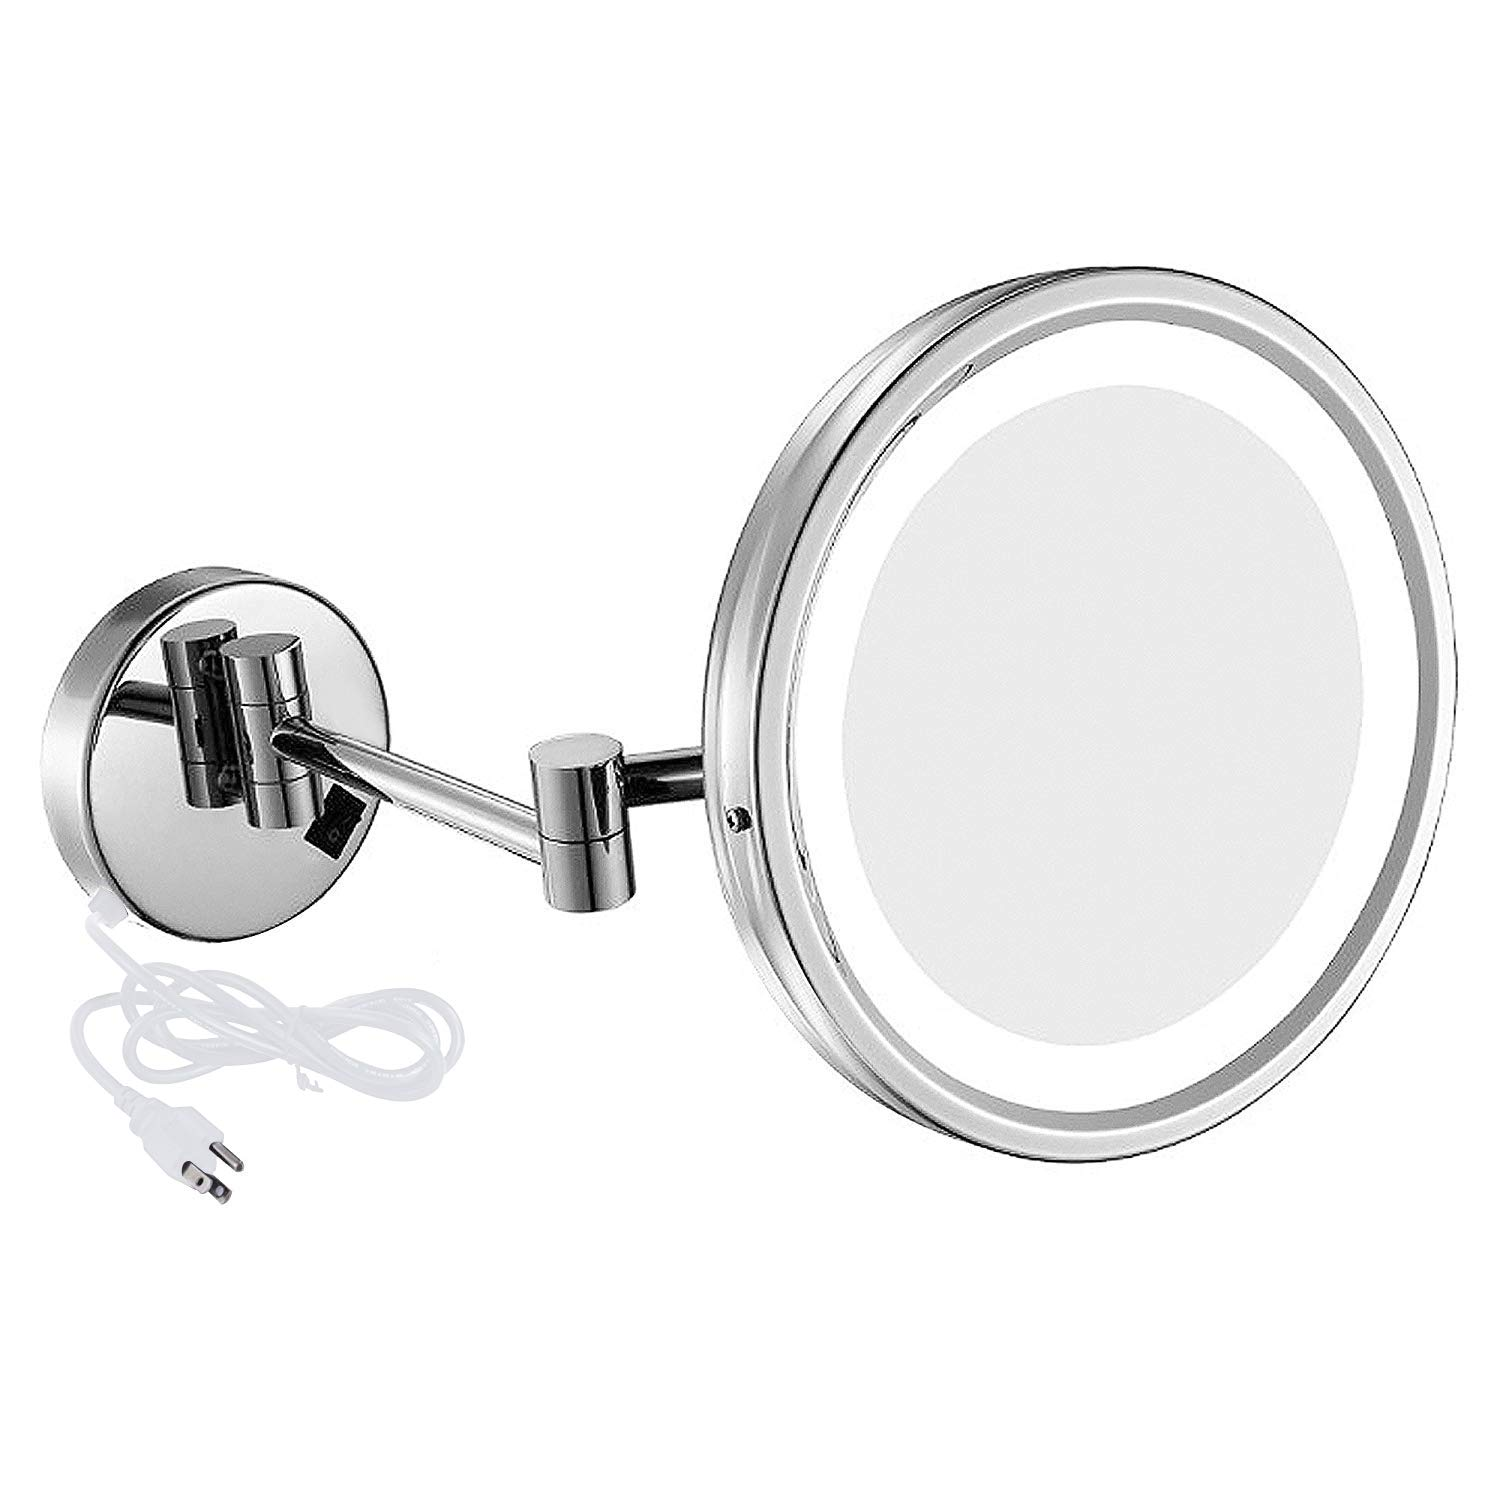 NiceVue LED Lighted Wall Mount Mirror 8.5-Inch with 7X Magnification, Swivel Mountable Makeup Mirror with Plug Chrome Finish 8.5in,7x